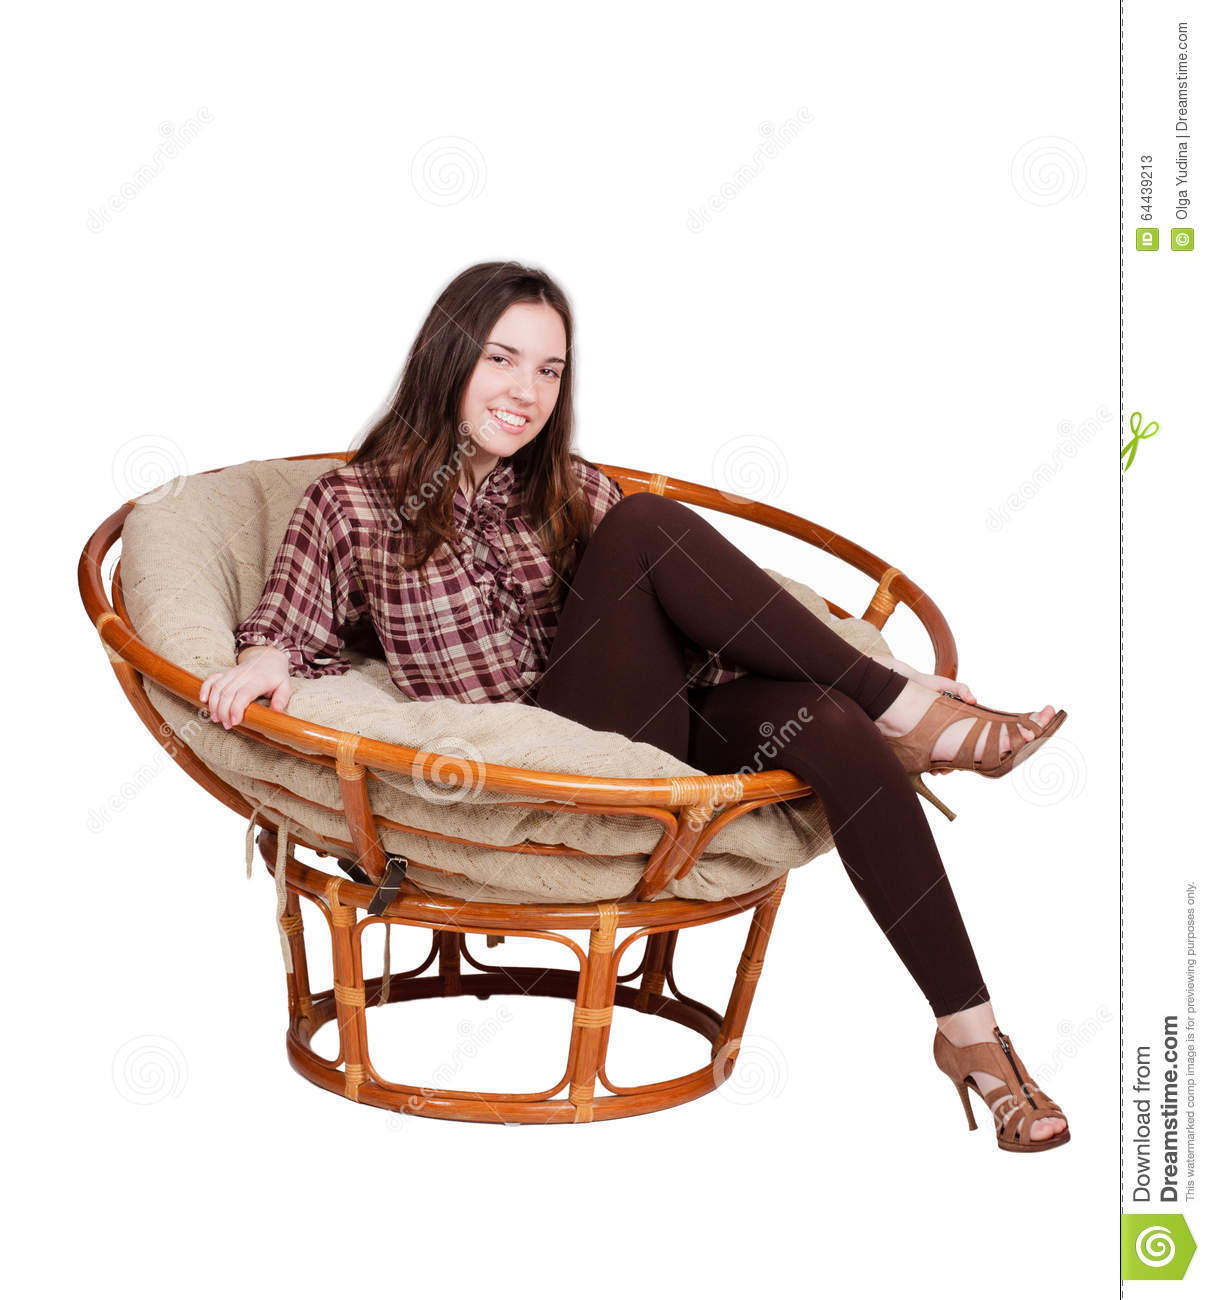 Merveilleux Girl Relaxes In A Papasan Chair Isolated On White